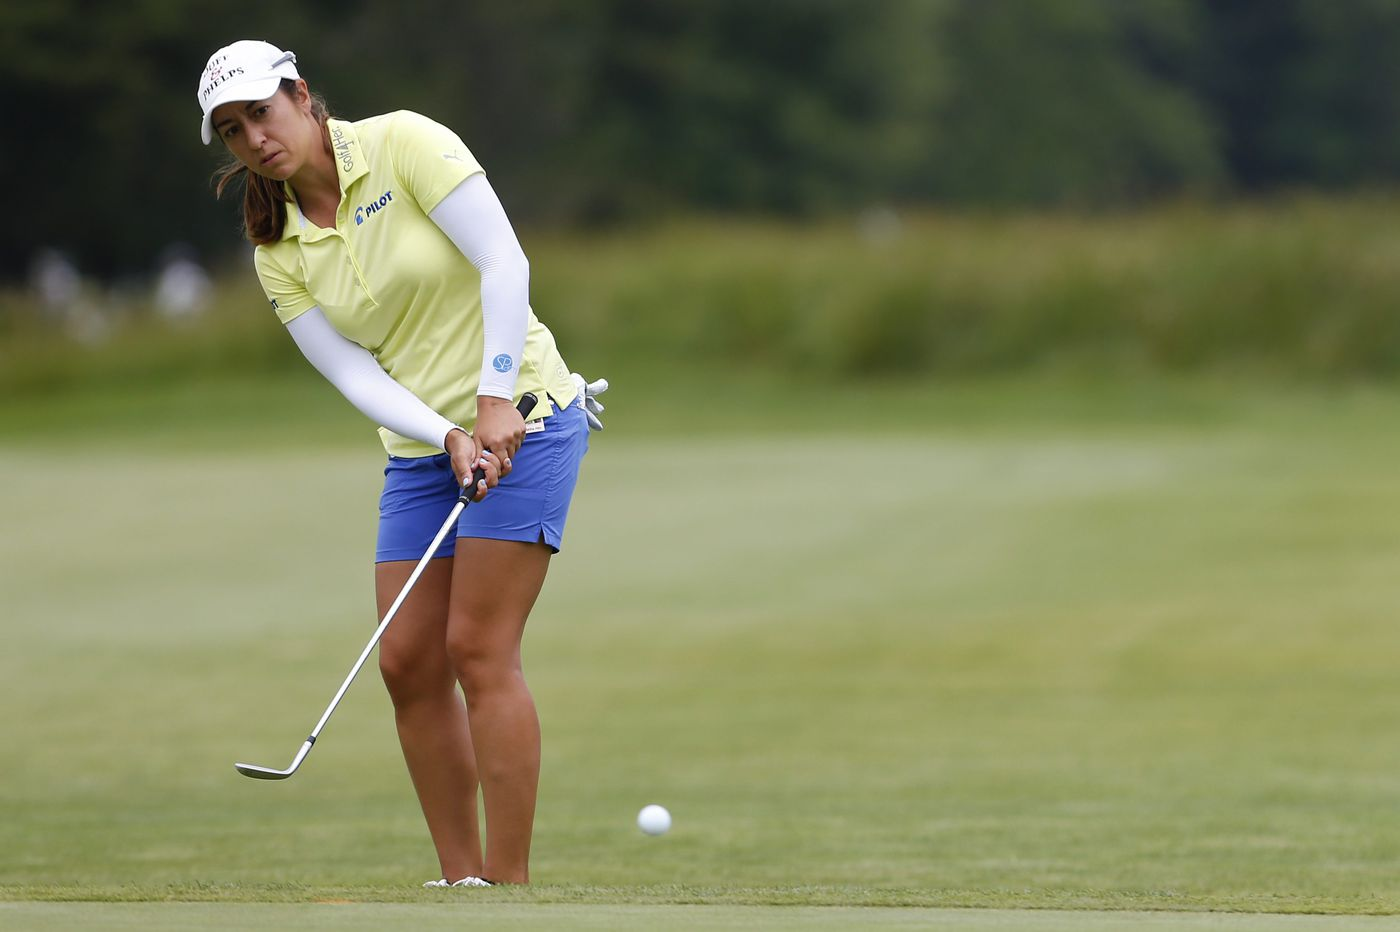 New Jersey native Marina Alex succeeds in her home state's LPGA tournament